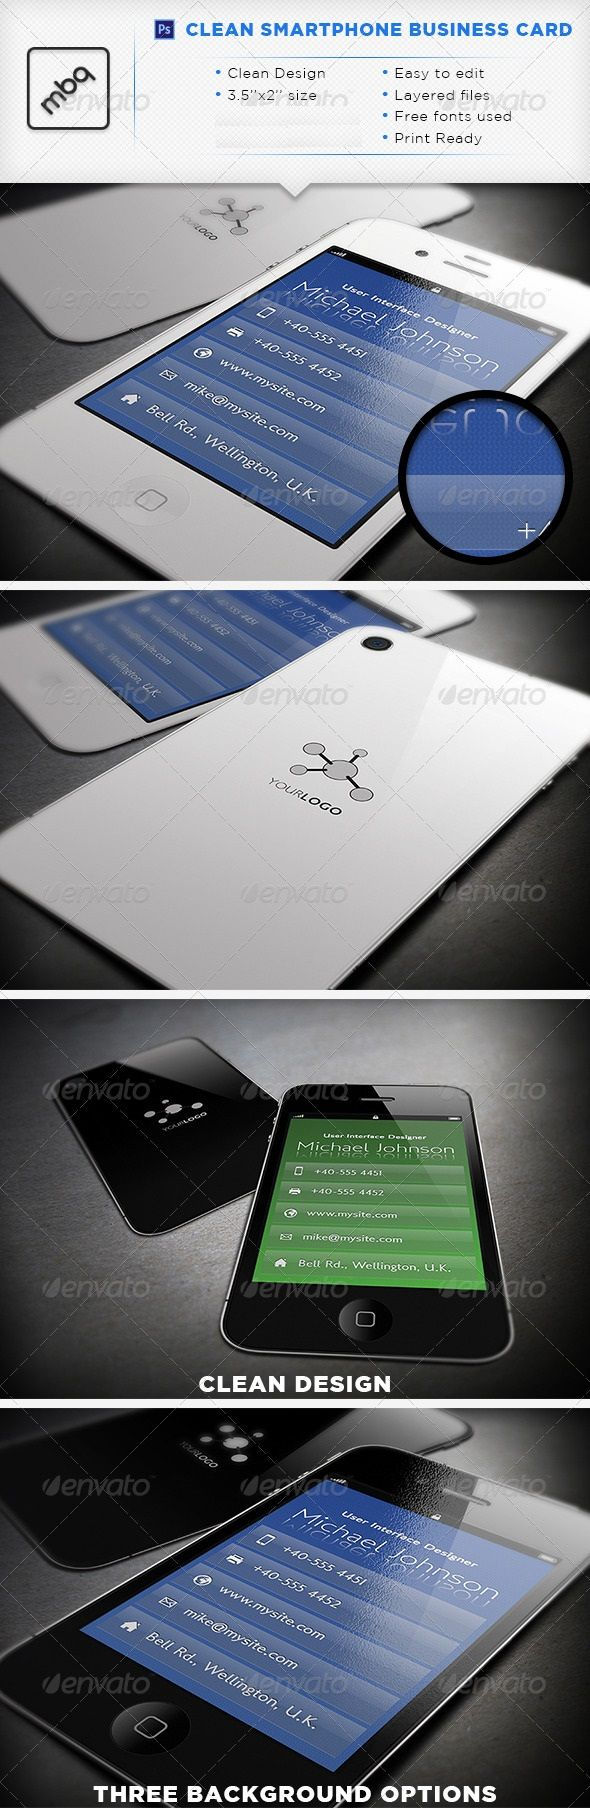 29 best business cards images on pinterest print templates clean smartphone business card get it customized as per your needs in only 1567 http reheart Gallery